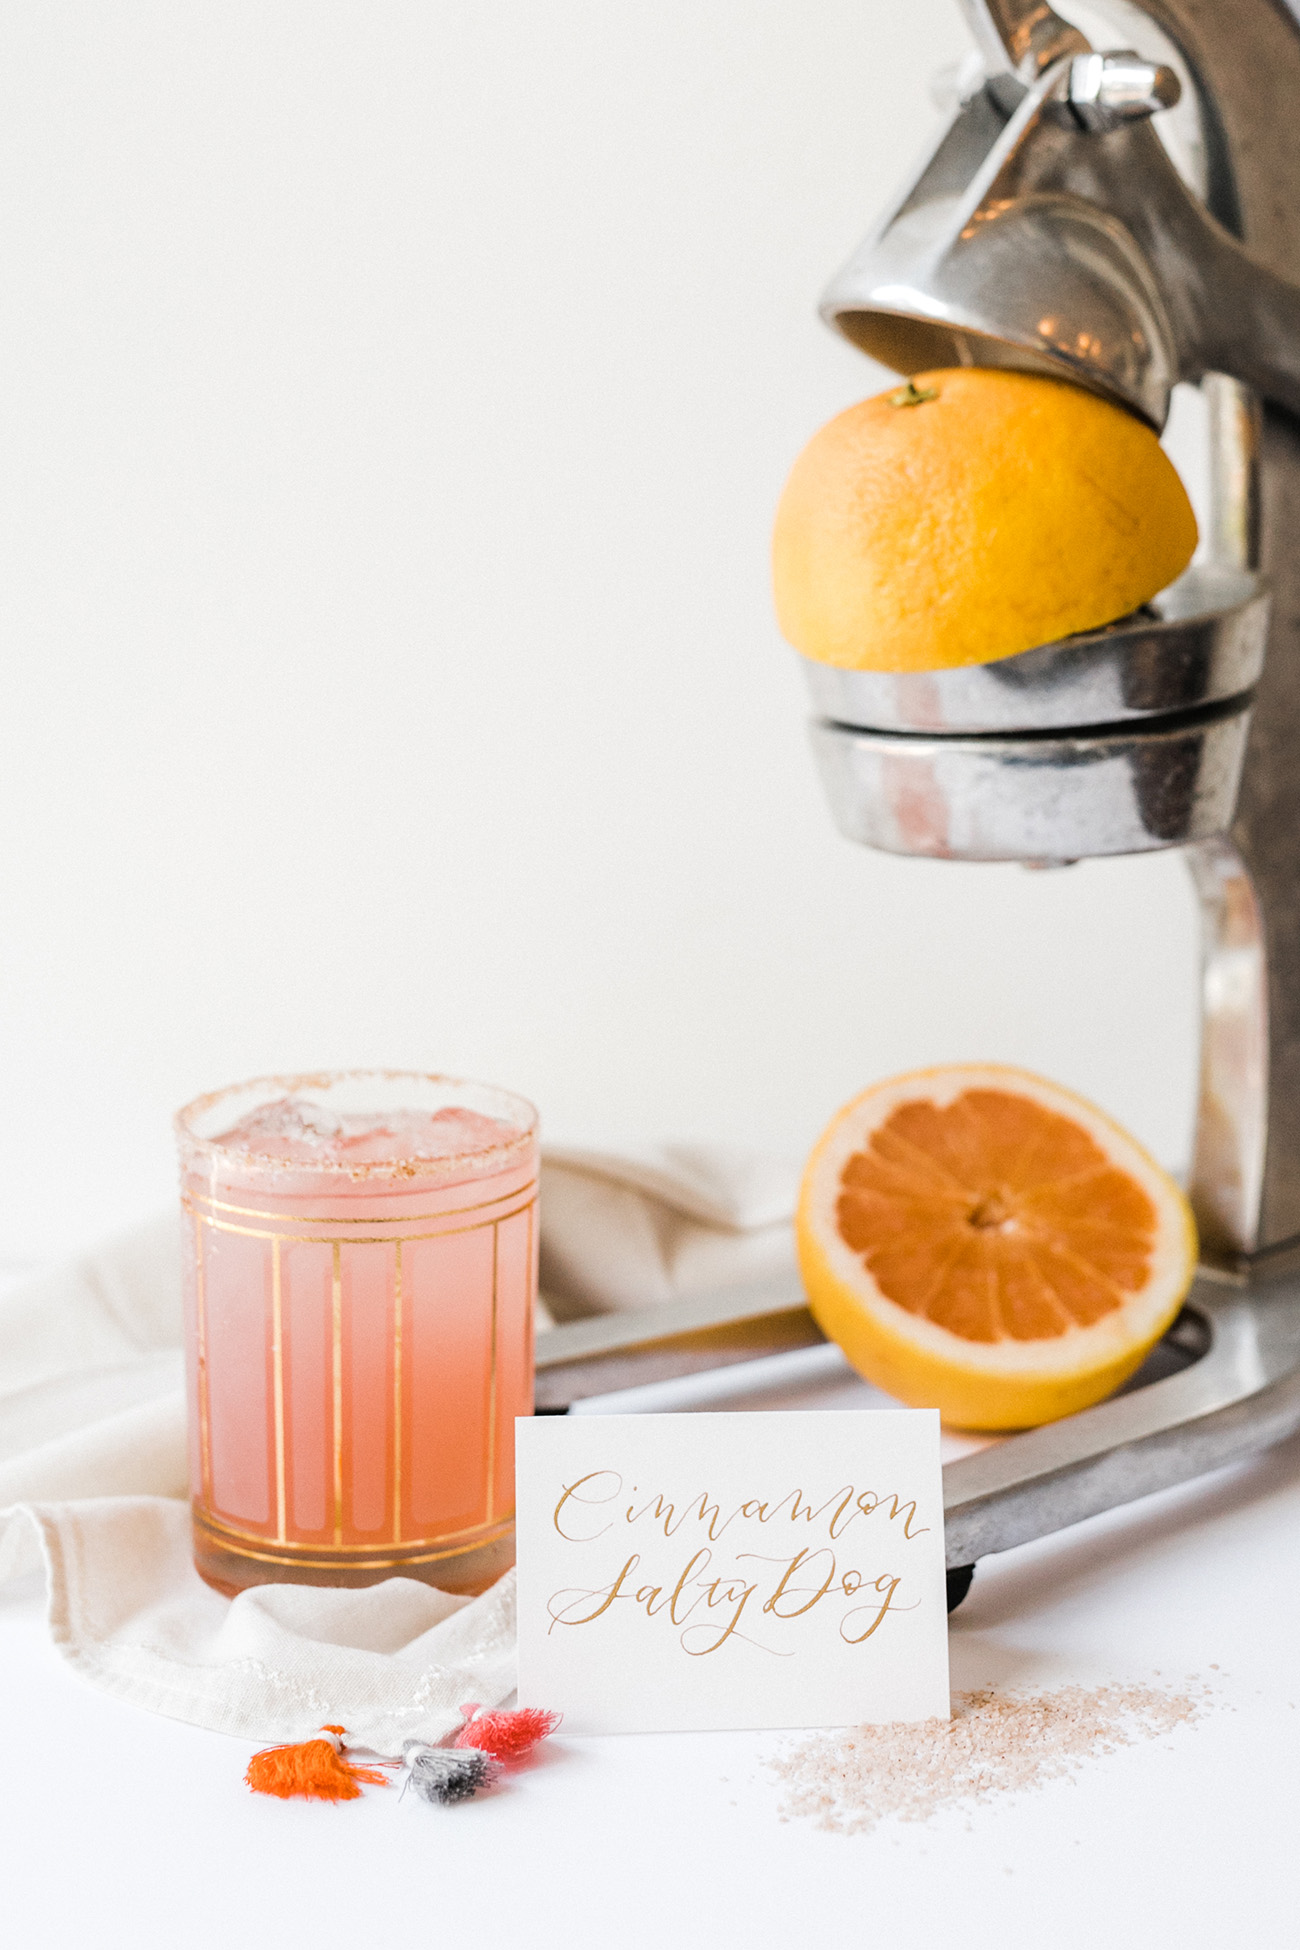 how to make salty dog cocktail